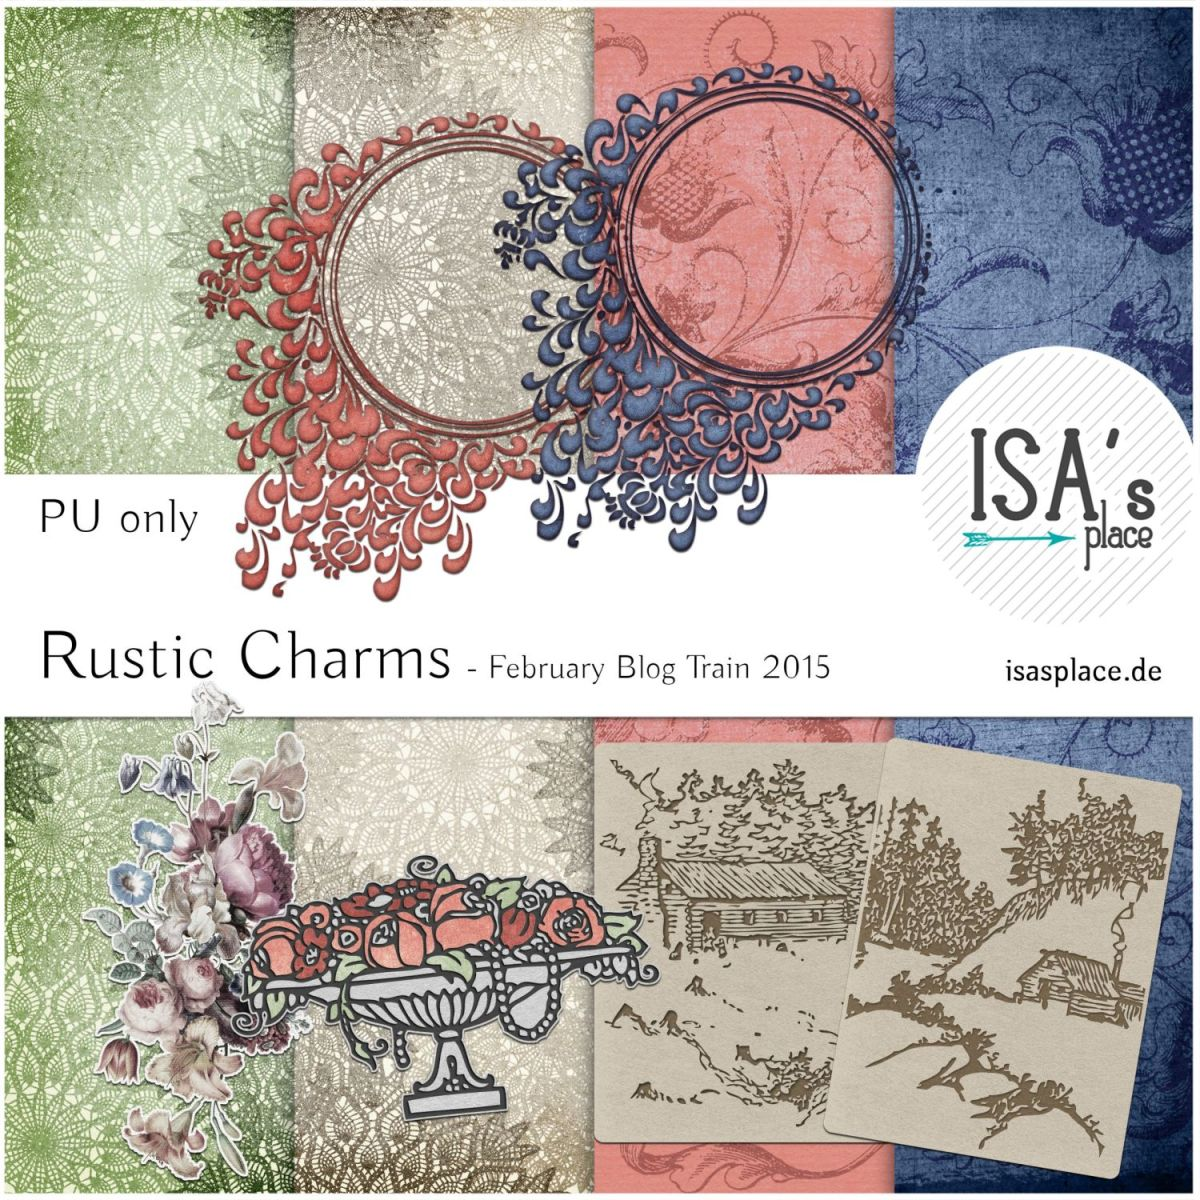 February 2015 Blog Train RUSTIC CHARMS